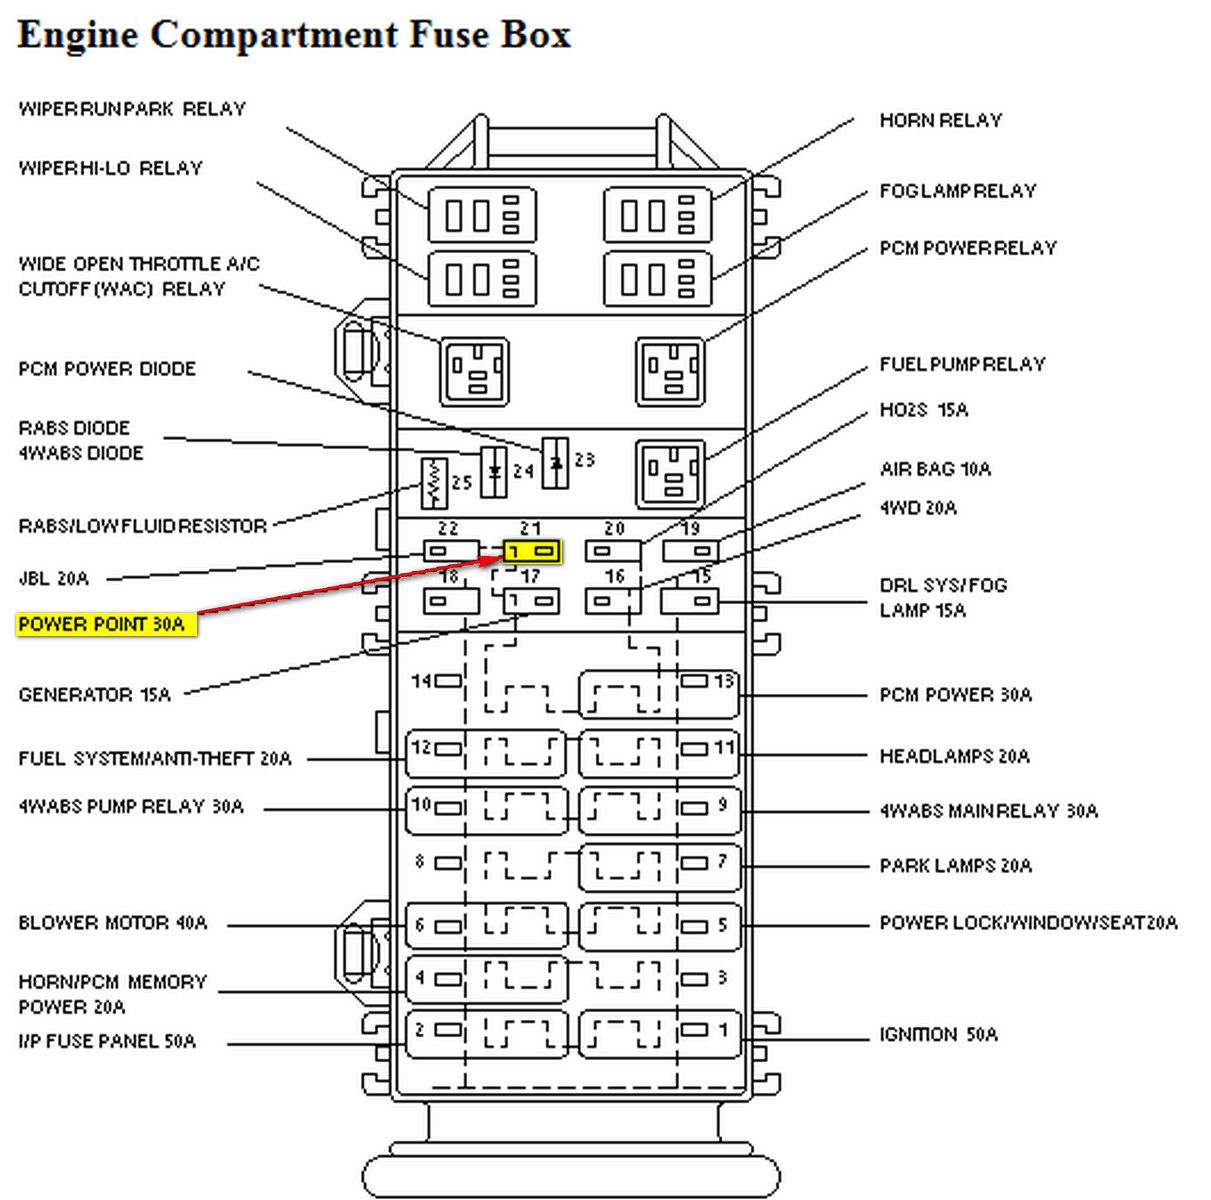 1996 ford ranger fuse box diagram wiring diagram sheet2002 ford ranger fuse diagram 1997 ford ranger [ 1211 x 1200 Pixel ]